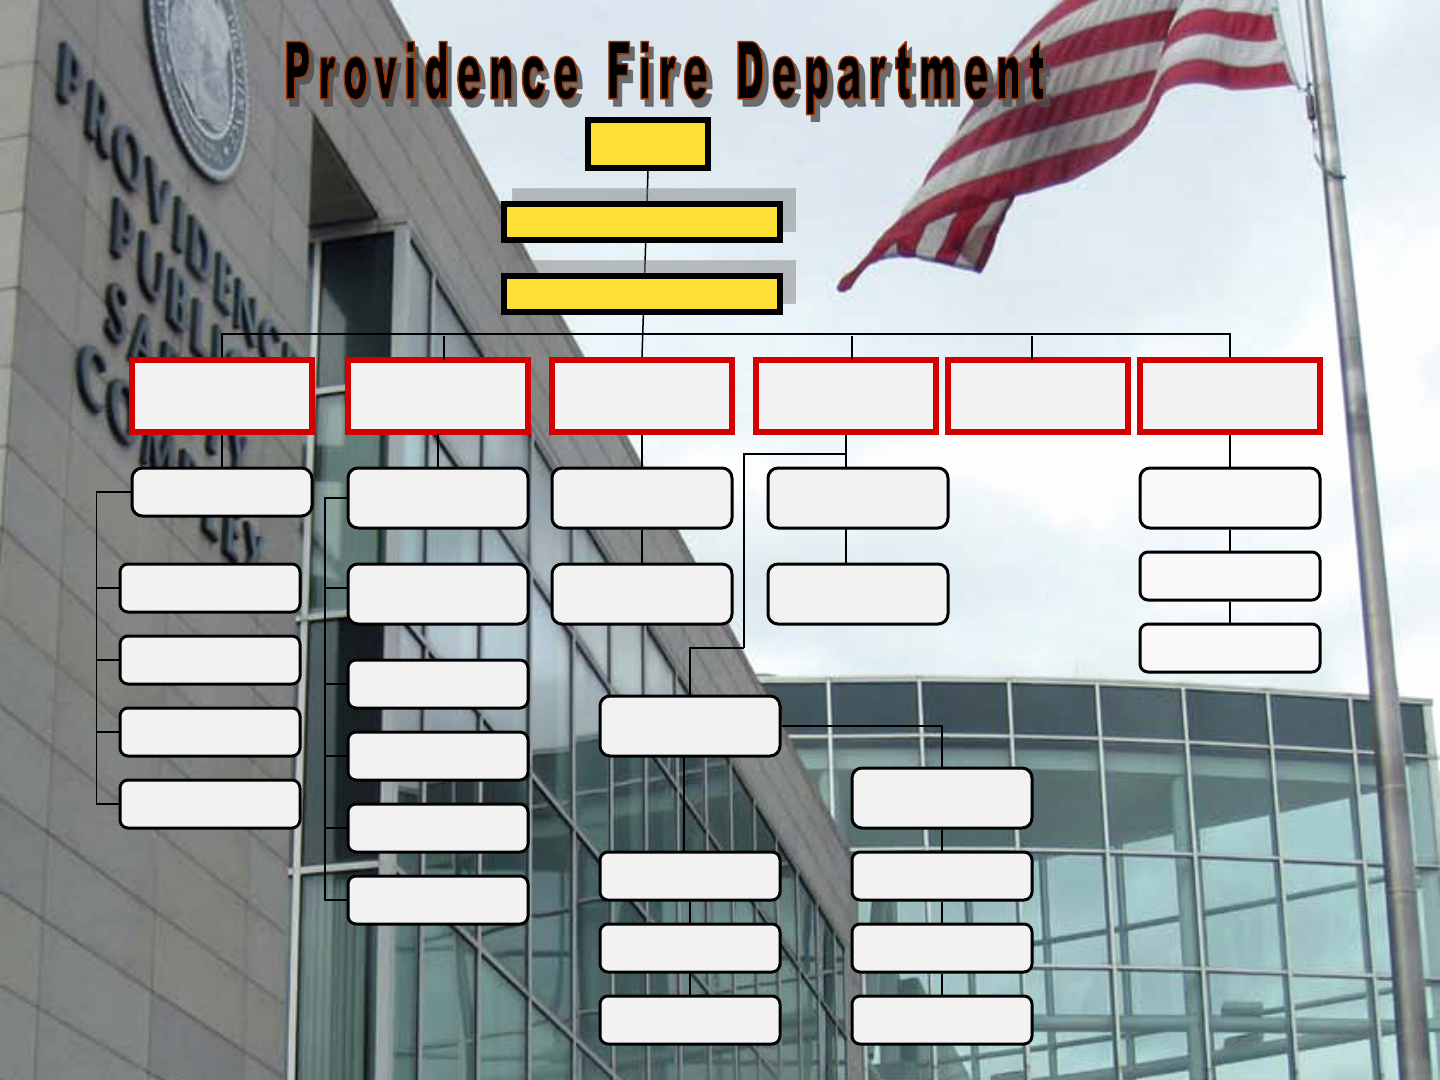 Fire Department organizational Chart Template Fresh Download Fire Department organizational Chart for Free